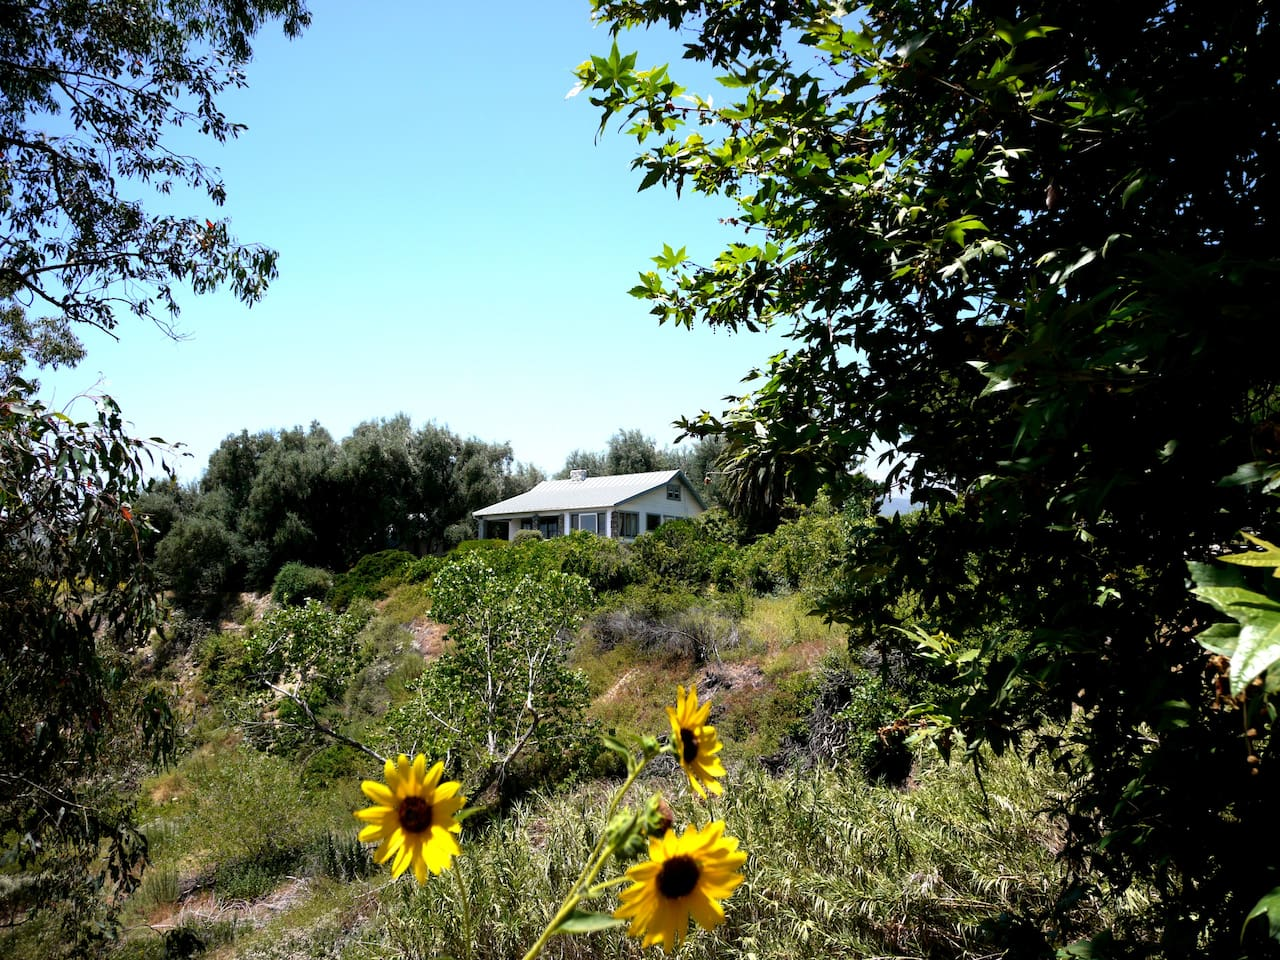 Tucked away next to an Olive grove you have the finest views of the mountains and valley below